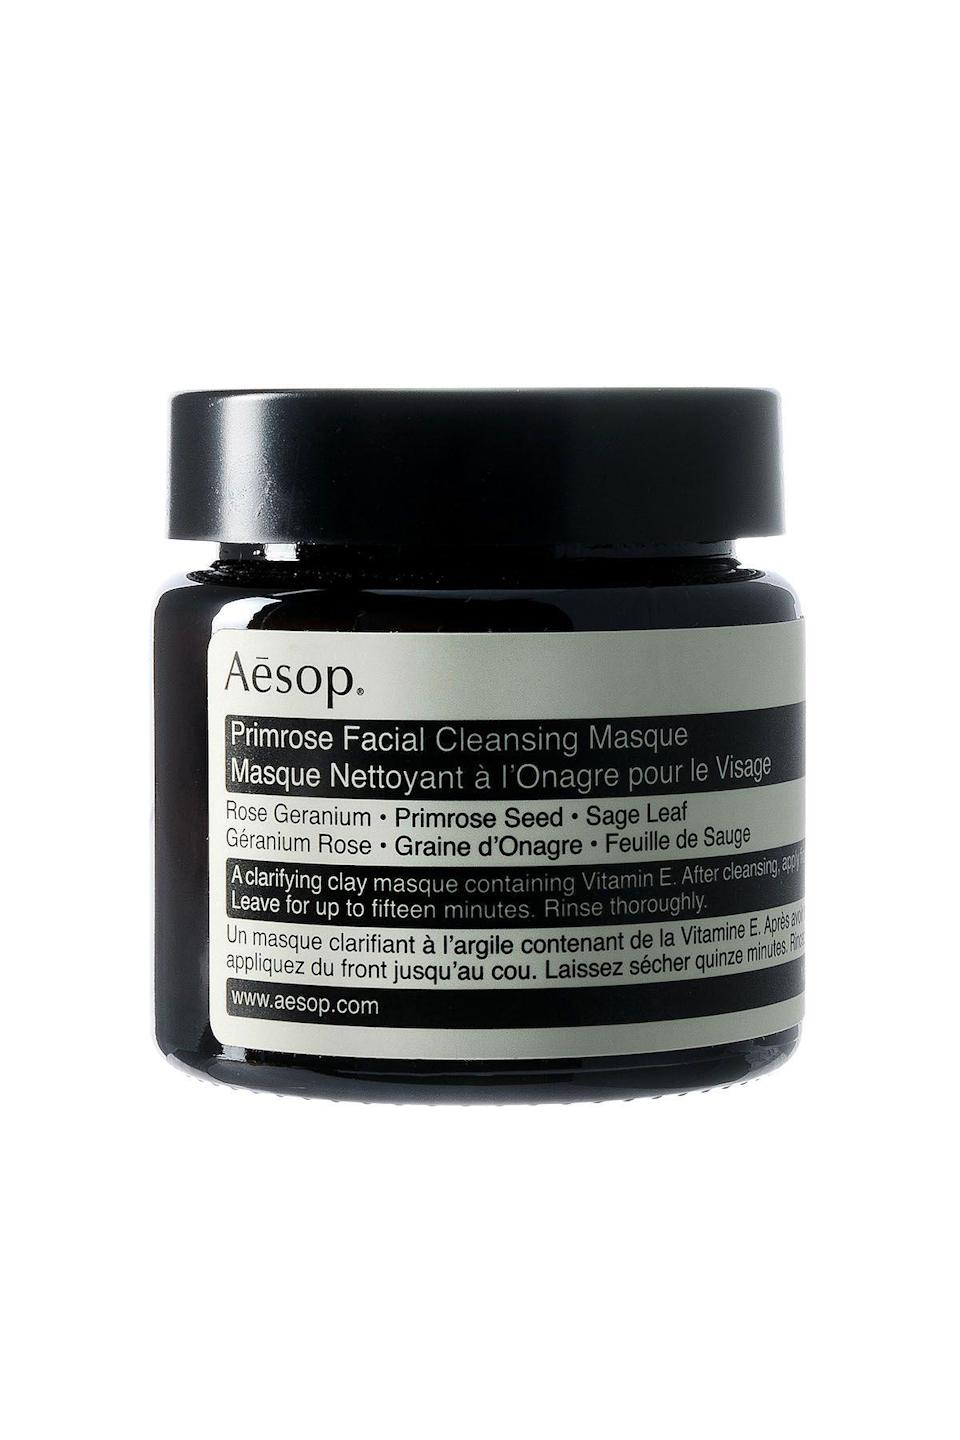 "<p><strong>Aesop</strong></p><p>revolve.com</p><p><strong>$40.00</strong></p><p><a href=""https://go.redirectingat.com?id=74968X1596630&url=https%3A%2F%2Fwww.revolve.com%2Fdp%2FAESR-WU78%2F&sref=https%3A%2F%2Fwww.marieclaire.com%2Fbeauty%2Fnews%2Fg4124%2Fbest-self-care-products%2F"" rel=""nofollow noopener"" target=""_blank"" data-ylk=""slk:SHOP IT"" class=""link rapid-noclick-resp"">SHOP IT</a></p><p>Clear pores = clear conscience. (If only it were that easy.)</p>"